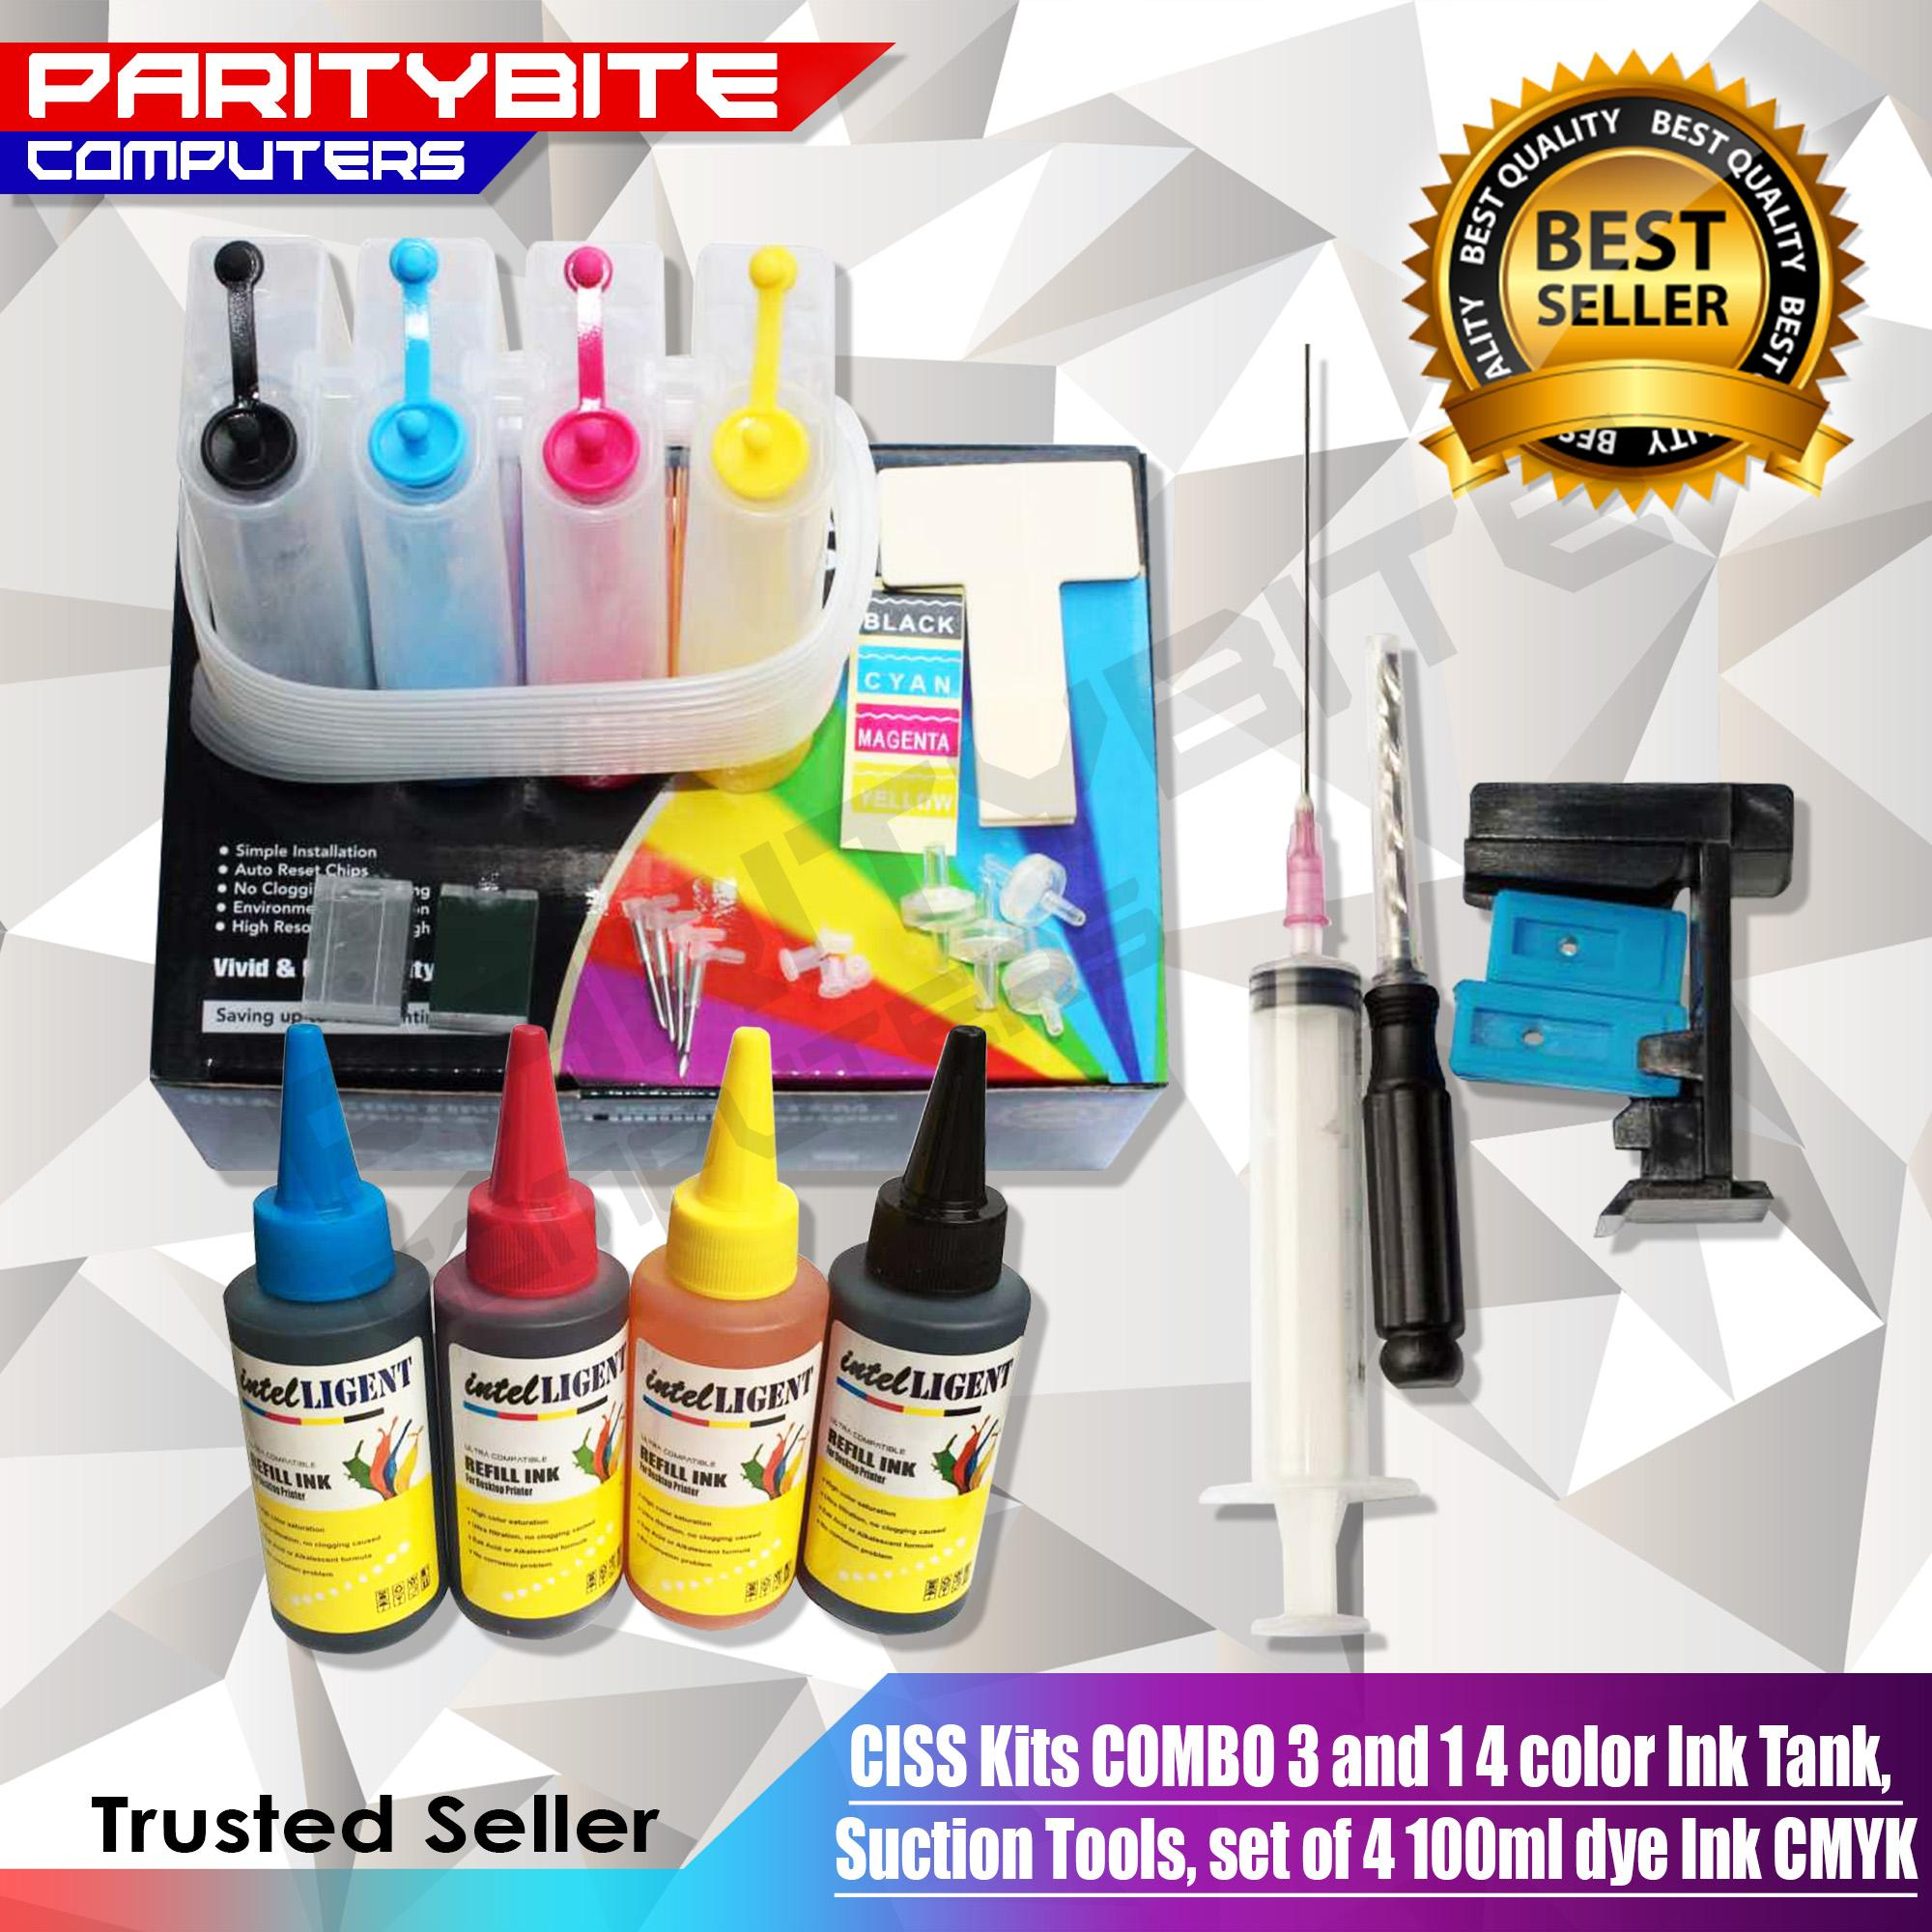 Ciss Kits Combo 3n1 (4 Color Ink Tank, Suction Tools, Set Of 4 100ml Dye Ink Cmyk) By Paritybite Computers.